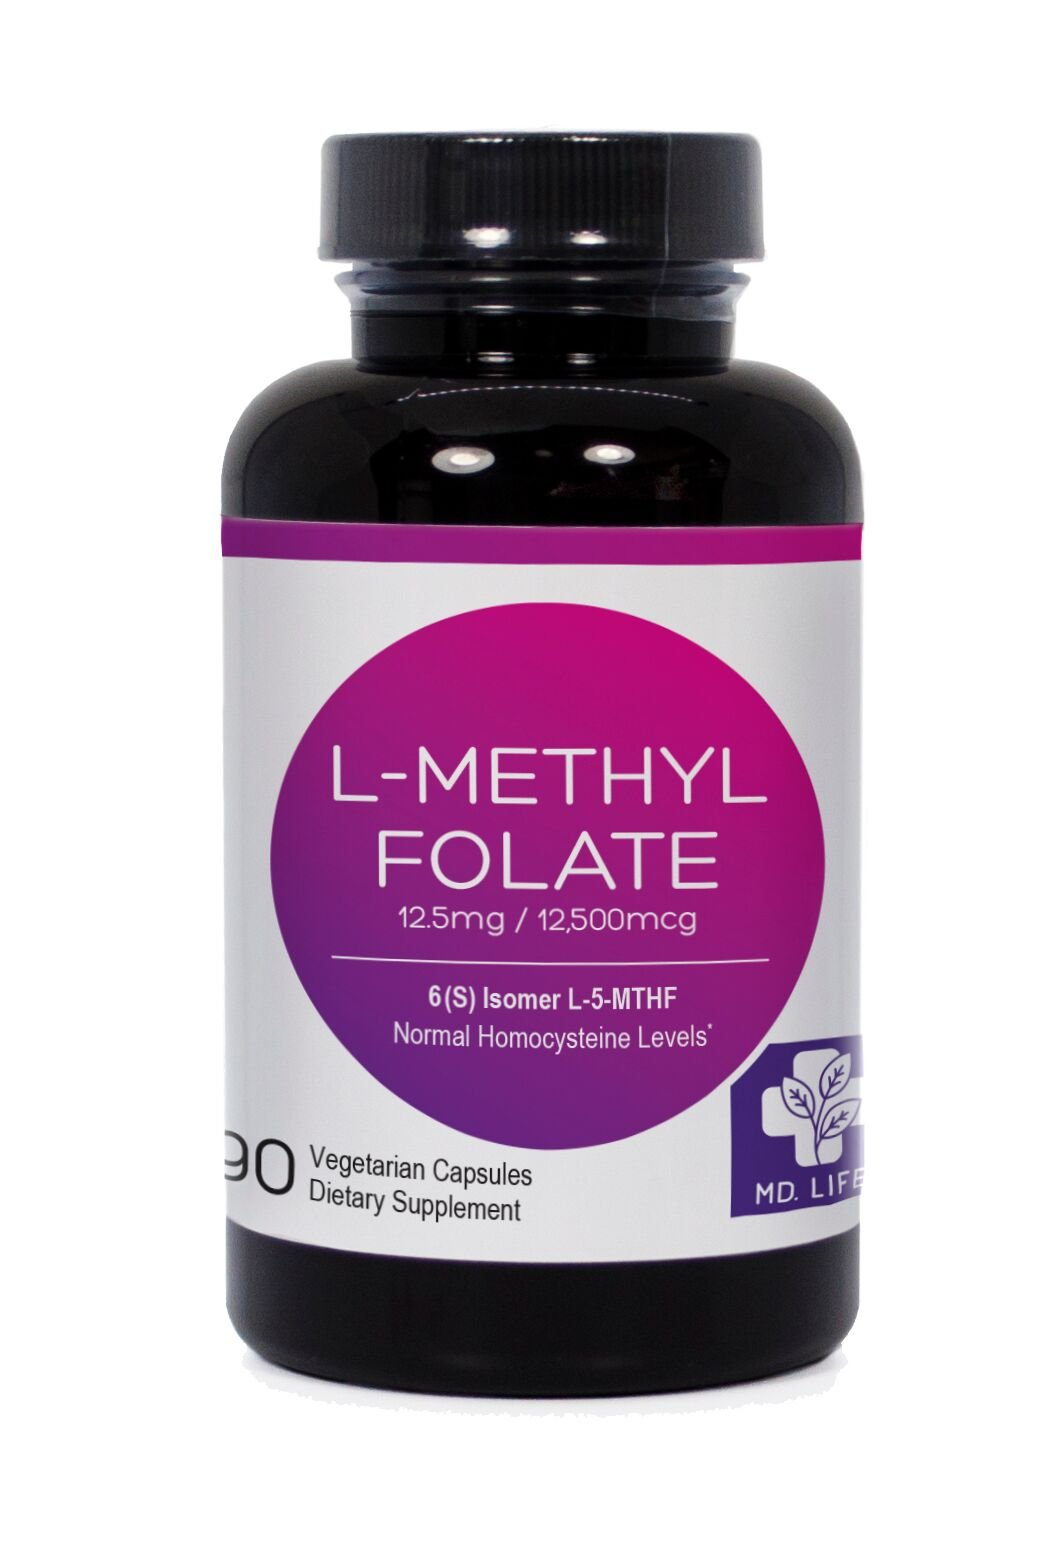 MD.LIFE 5-MTHF L-Methylfolate 12.5 MG Professional Strength Active Folate 90 Capsules (90)